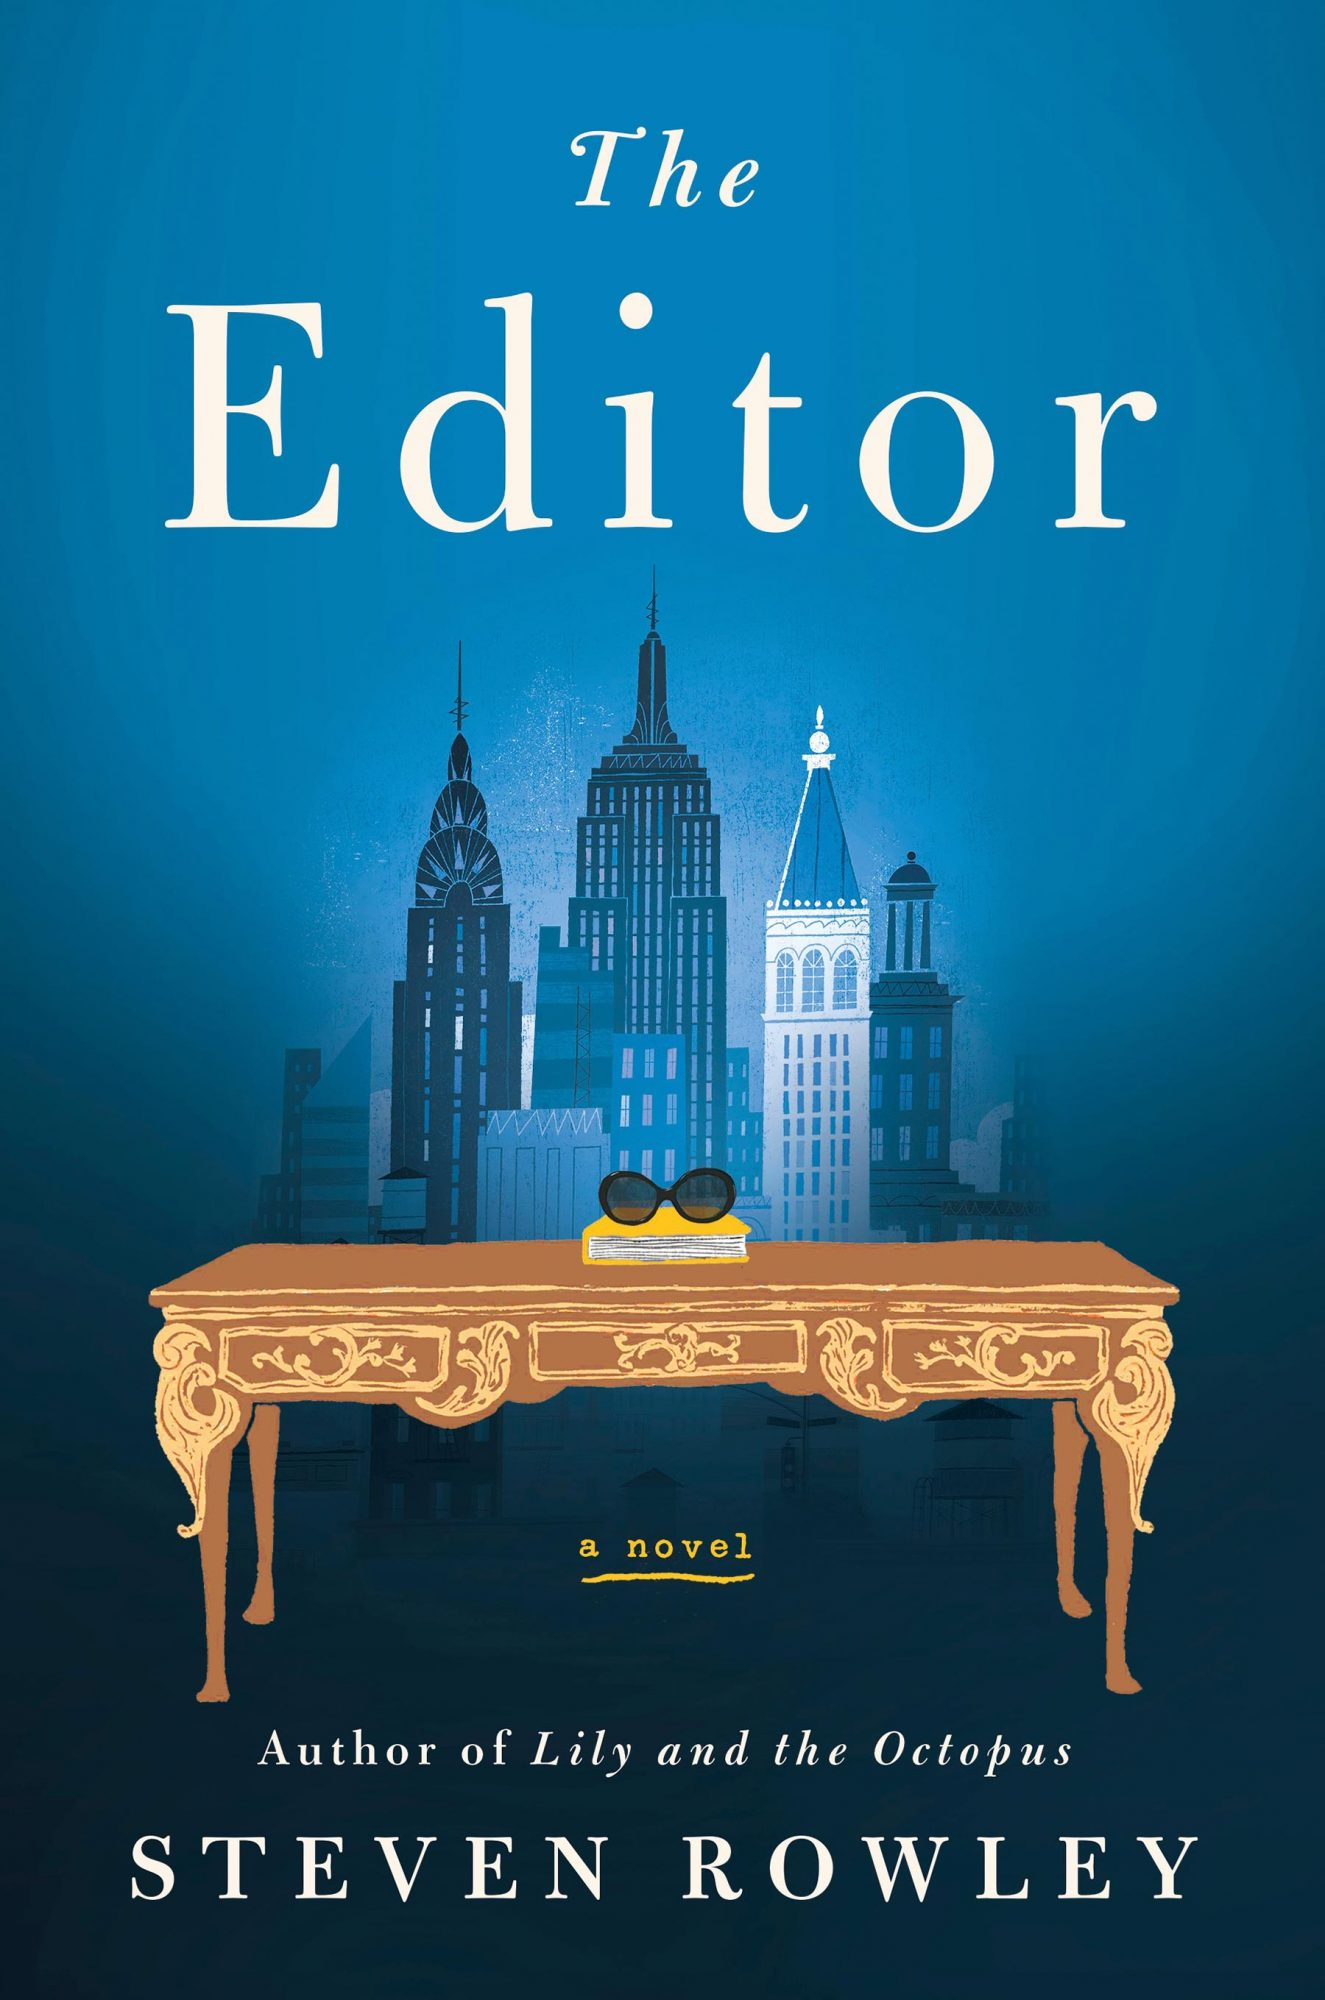 book cover for Steven Rowley's The Editor